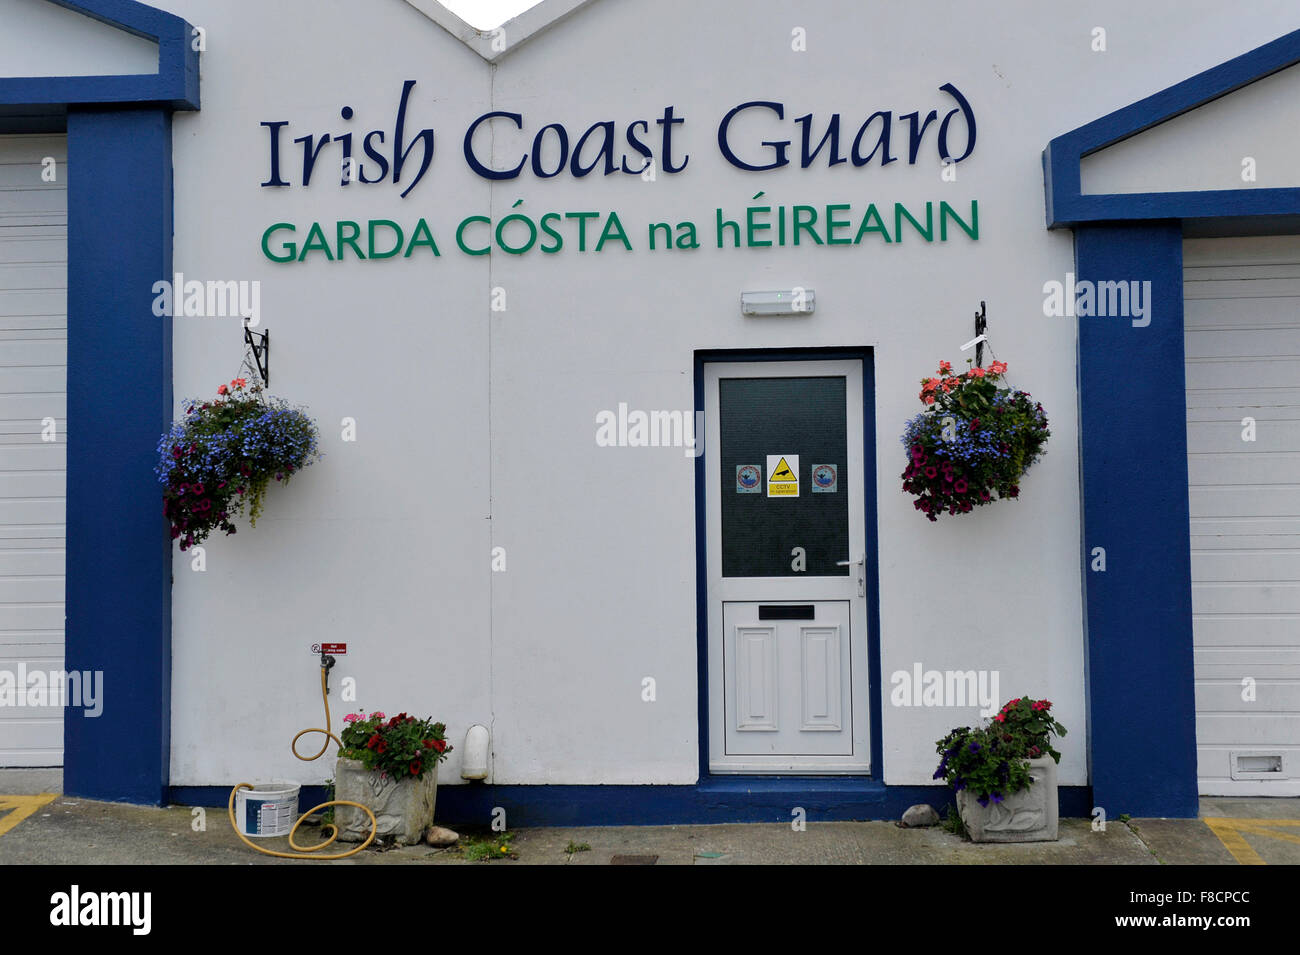 Exterior of Irish Coast Guard station in Green Castle, County Donegal, Ireland - Stock Image